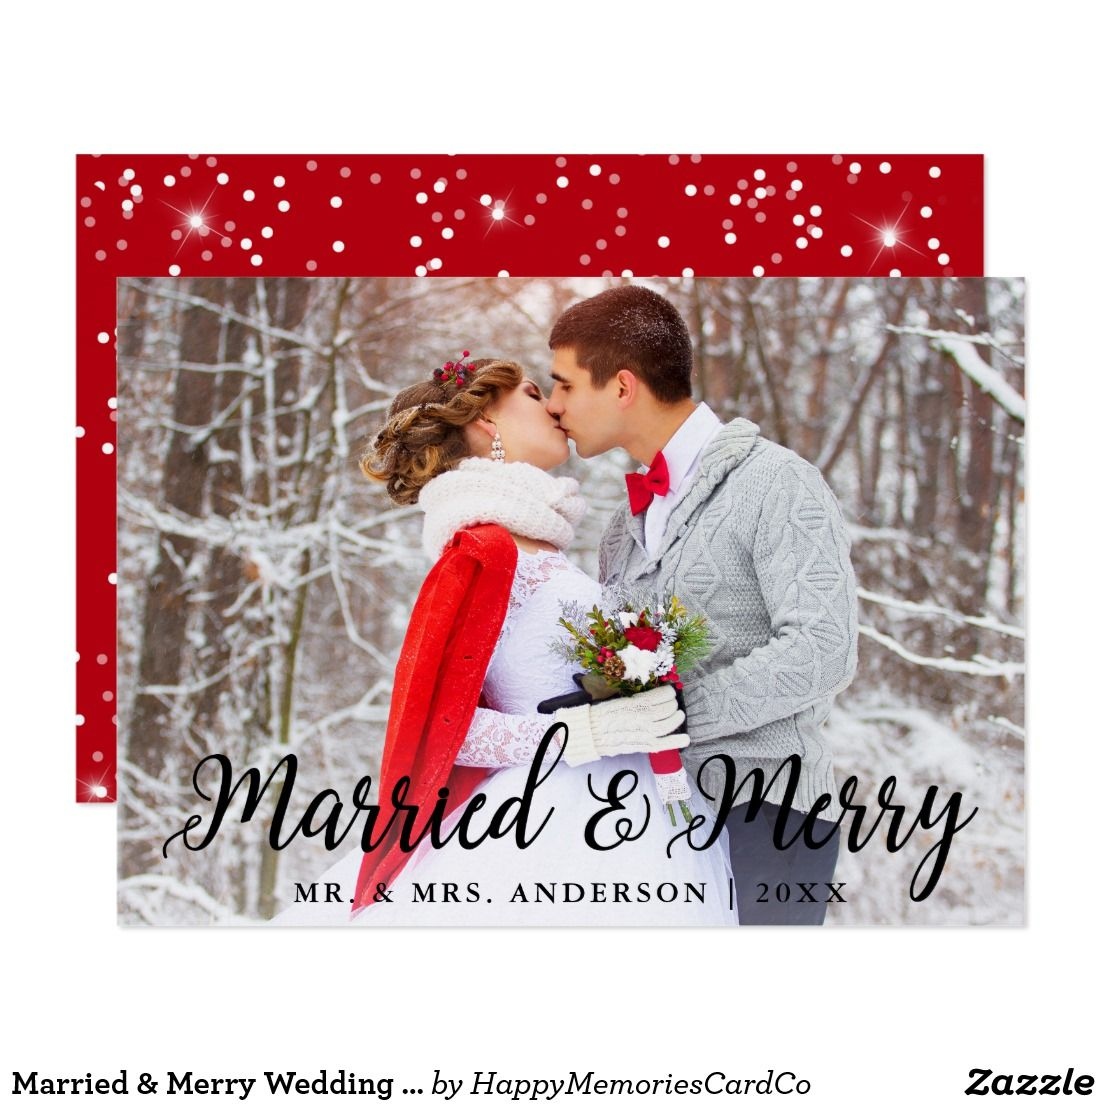 Married & Merry Wedding Photo Christmas Card S in 2018 | Just ...